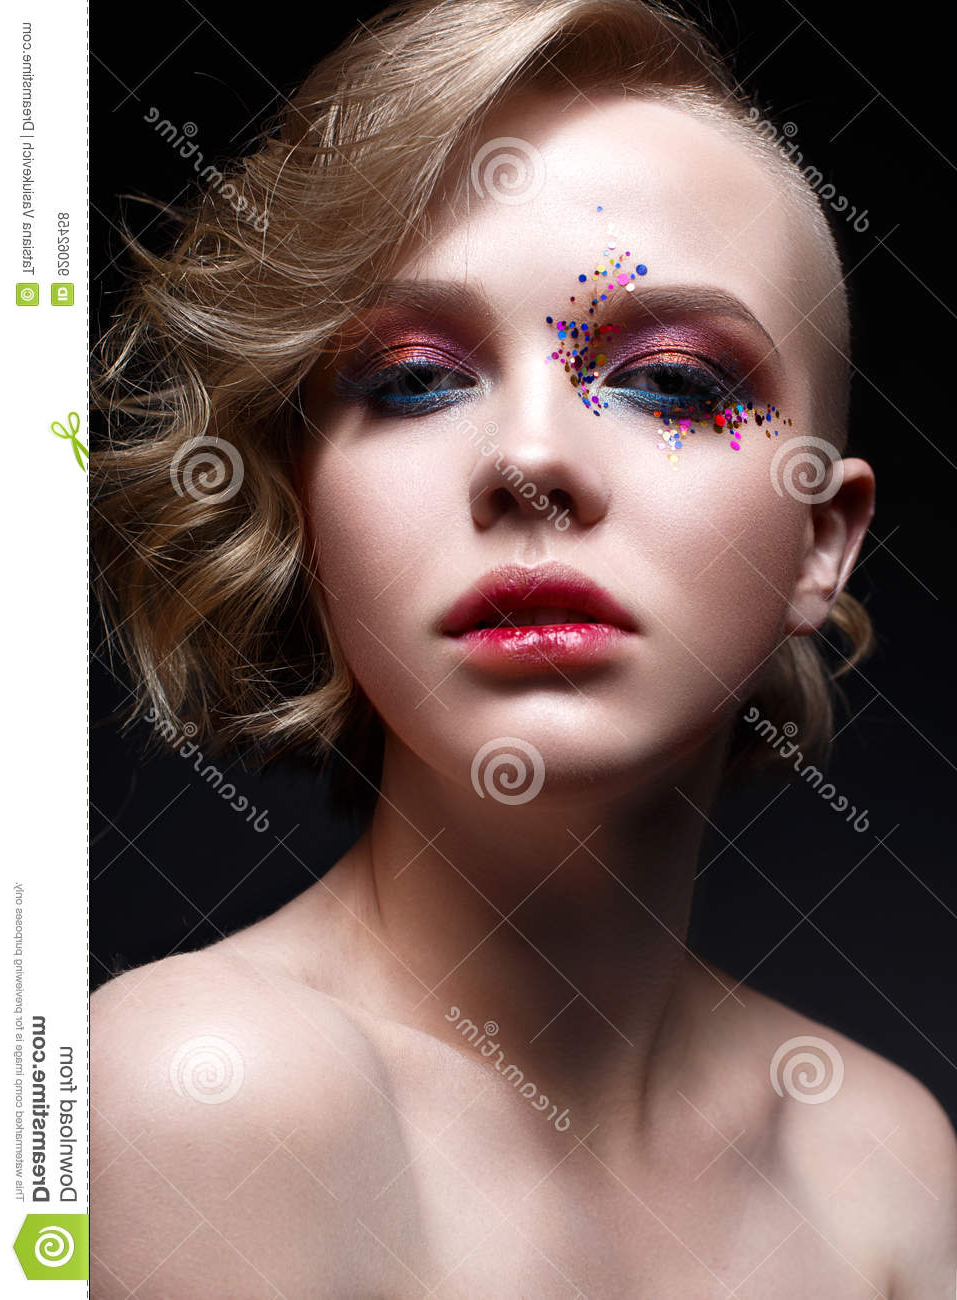 A Young Girl With A Short Haircut And Bright Creative Makeup (View 6 of 25)